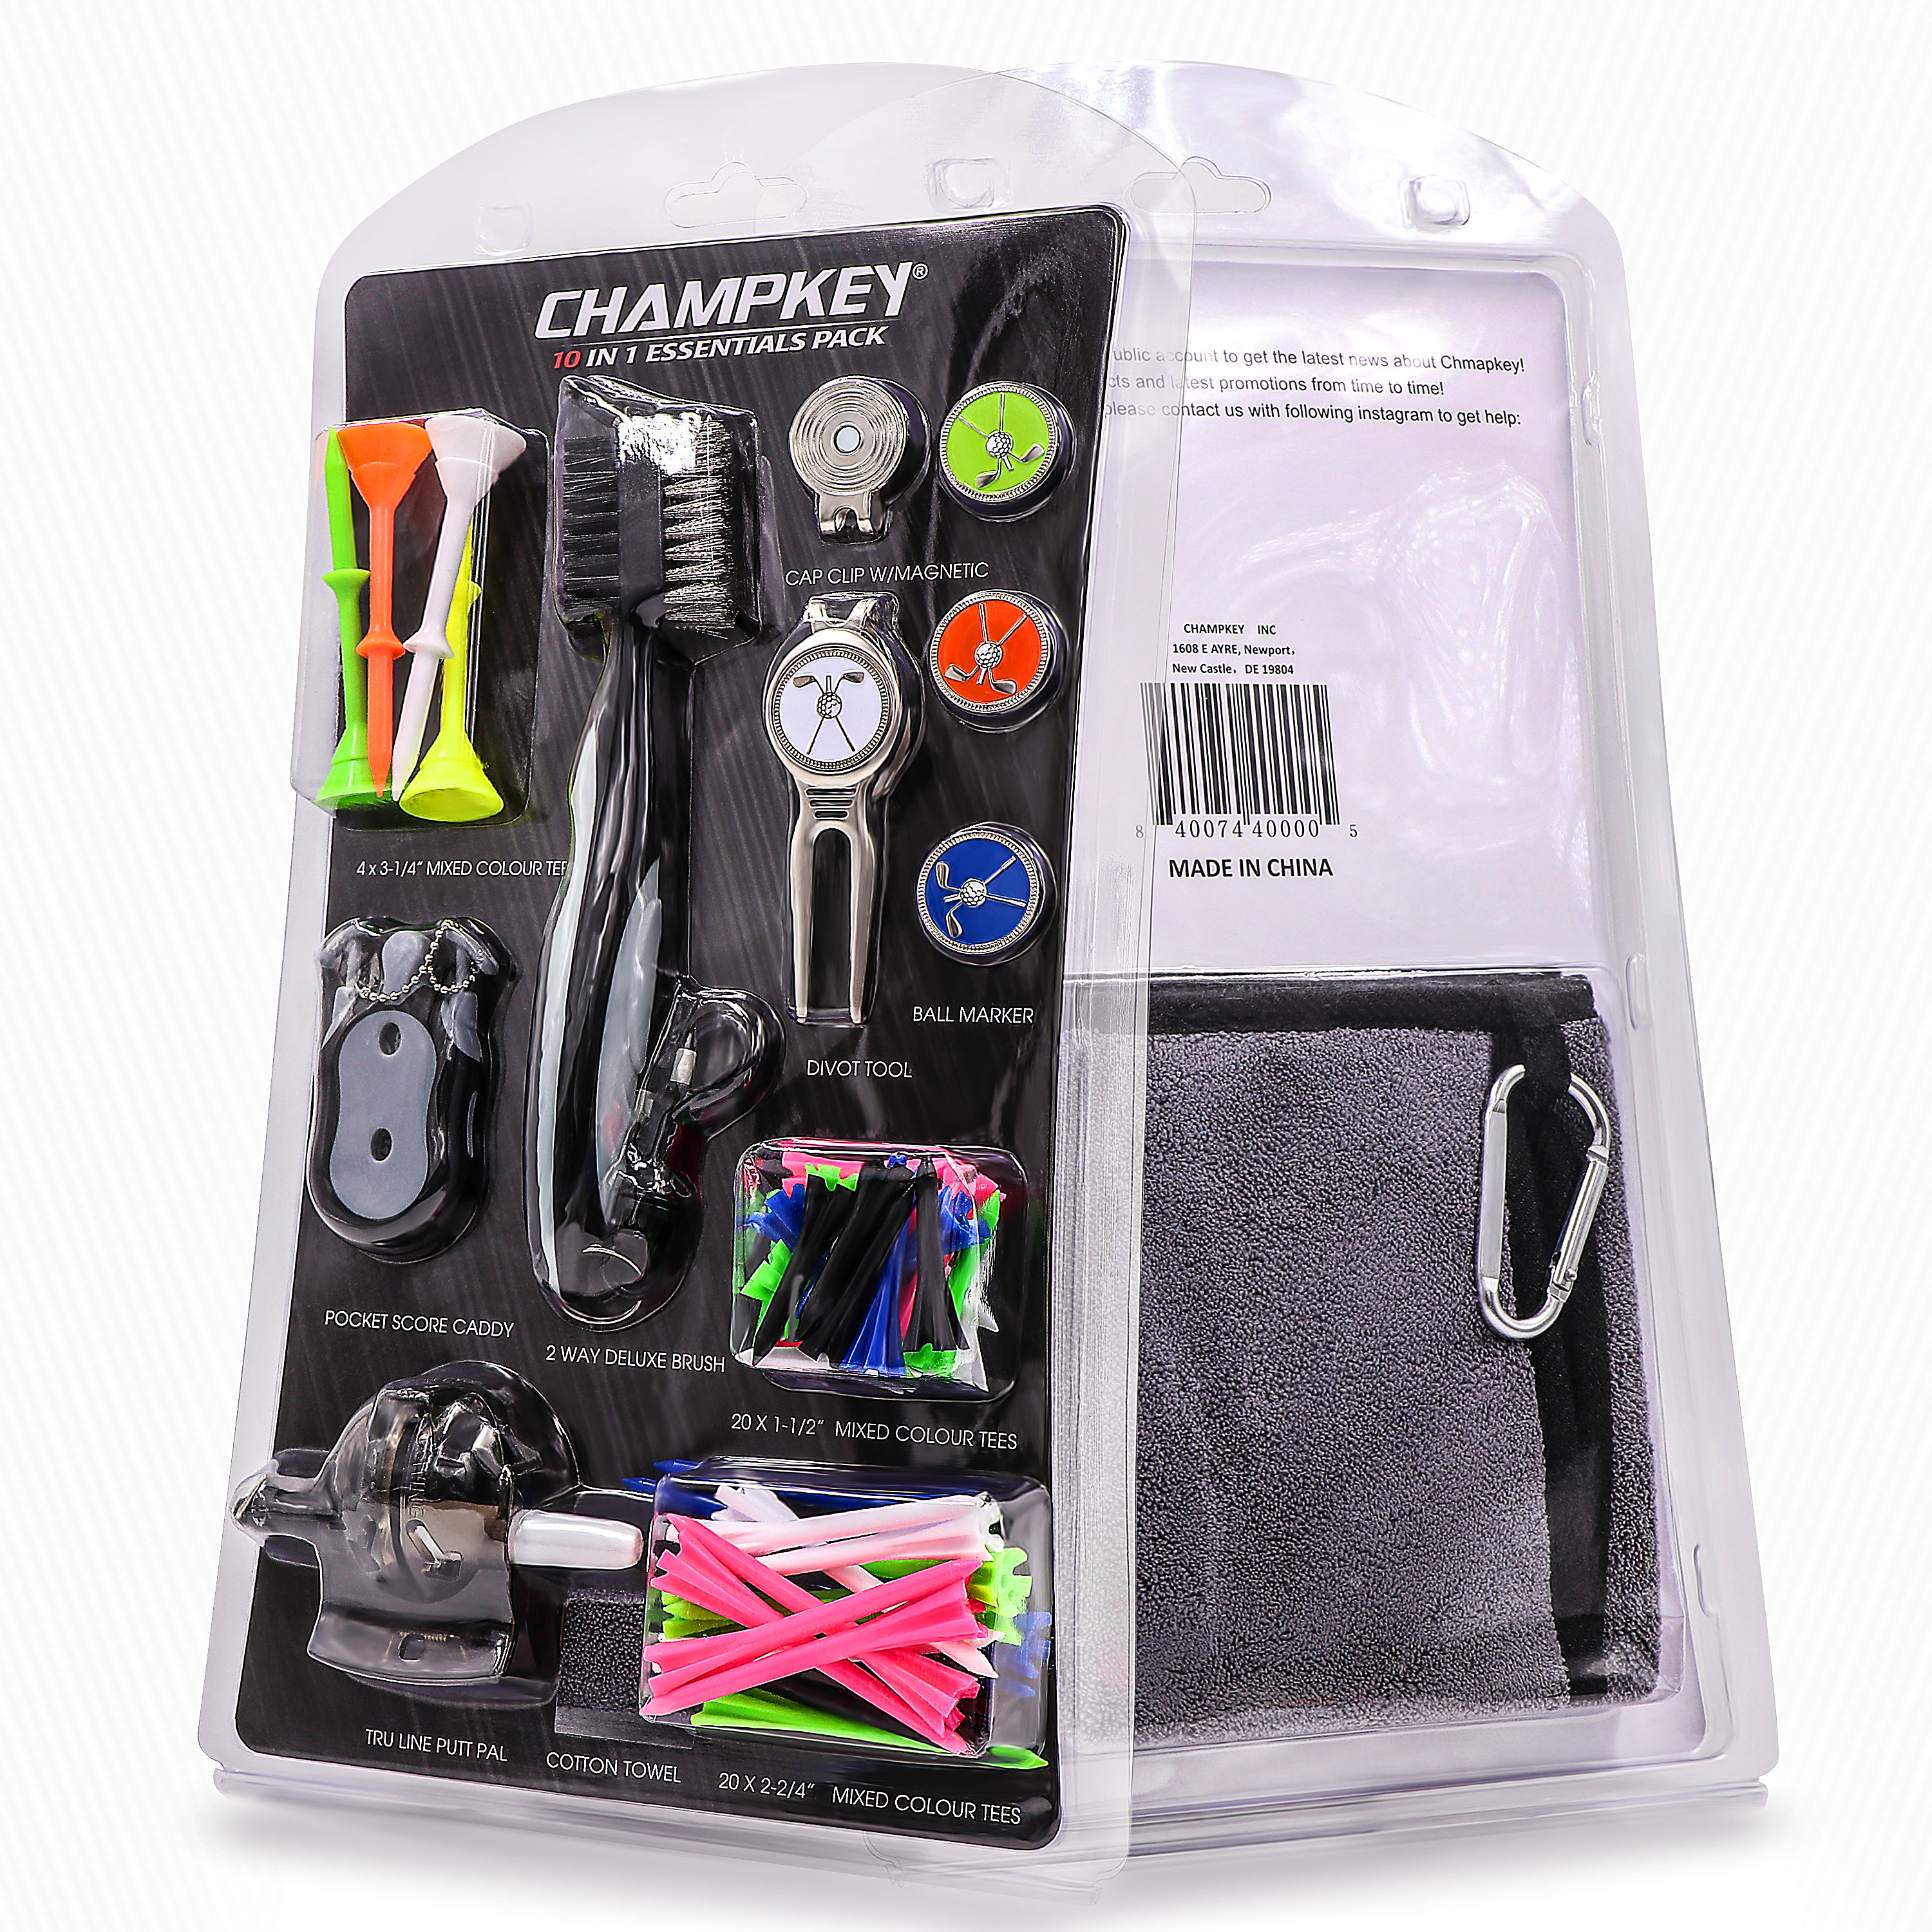 Champkey Luxury Golf Accessories Set Including Golf Brush,Golf Tees,Golf Score Caddy,Golf Divot Tool,Cap Clip,Ball Marker,etc.